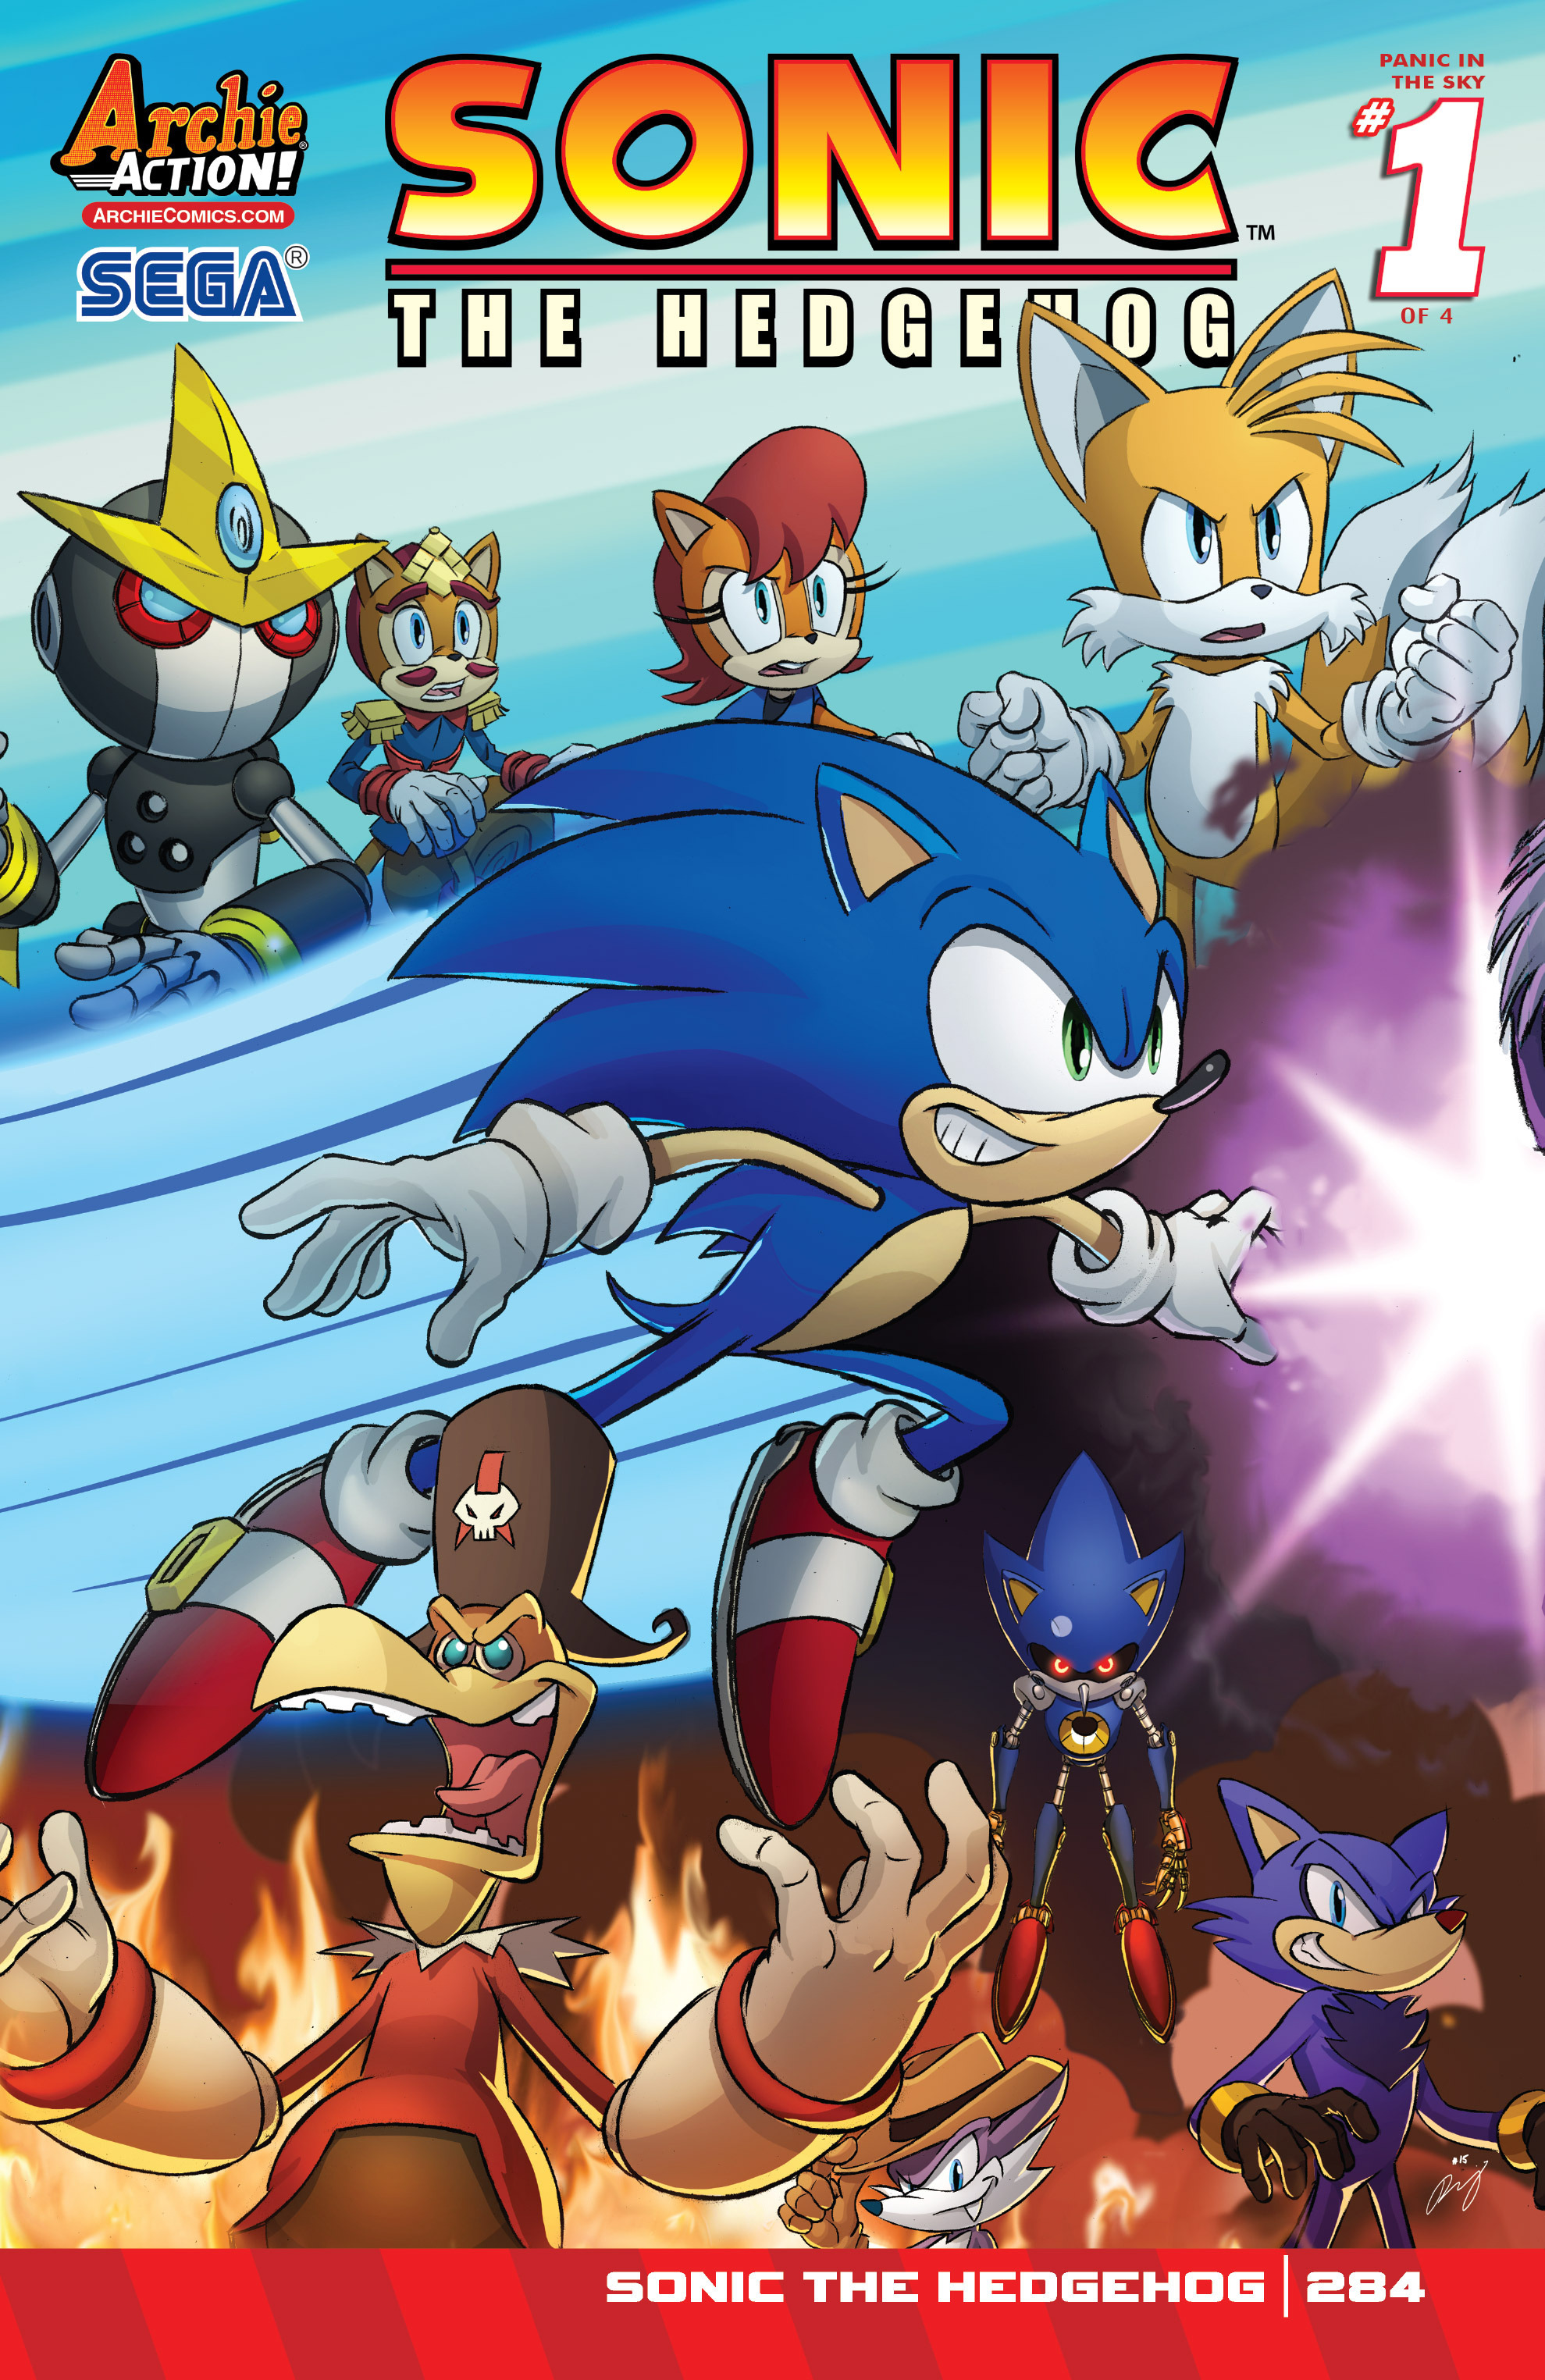 sonic the hedgehog 284 read sonic the hedgehog issue 284 online